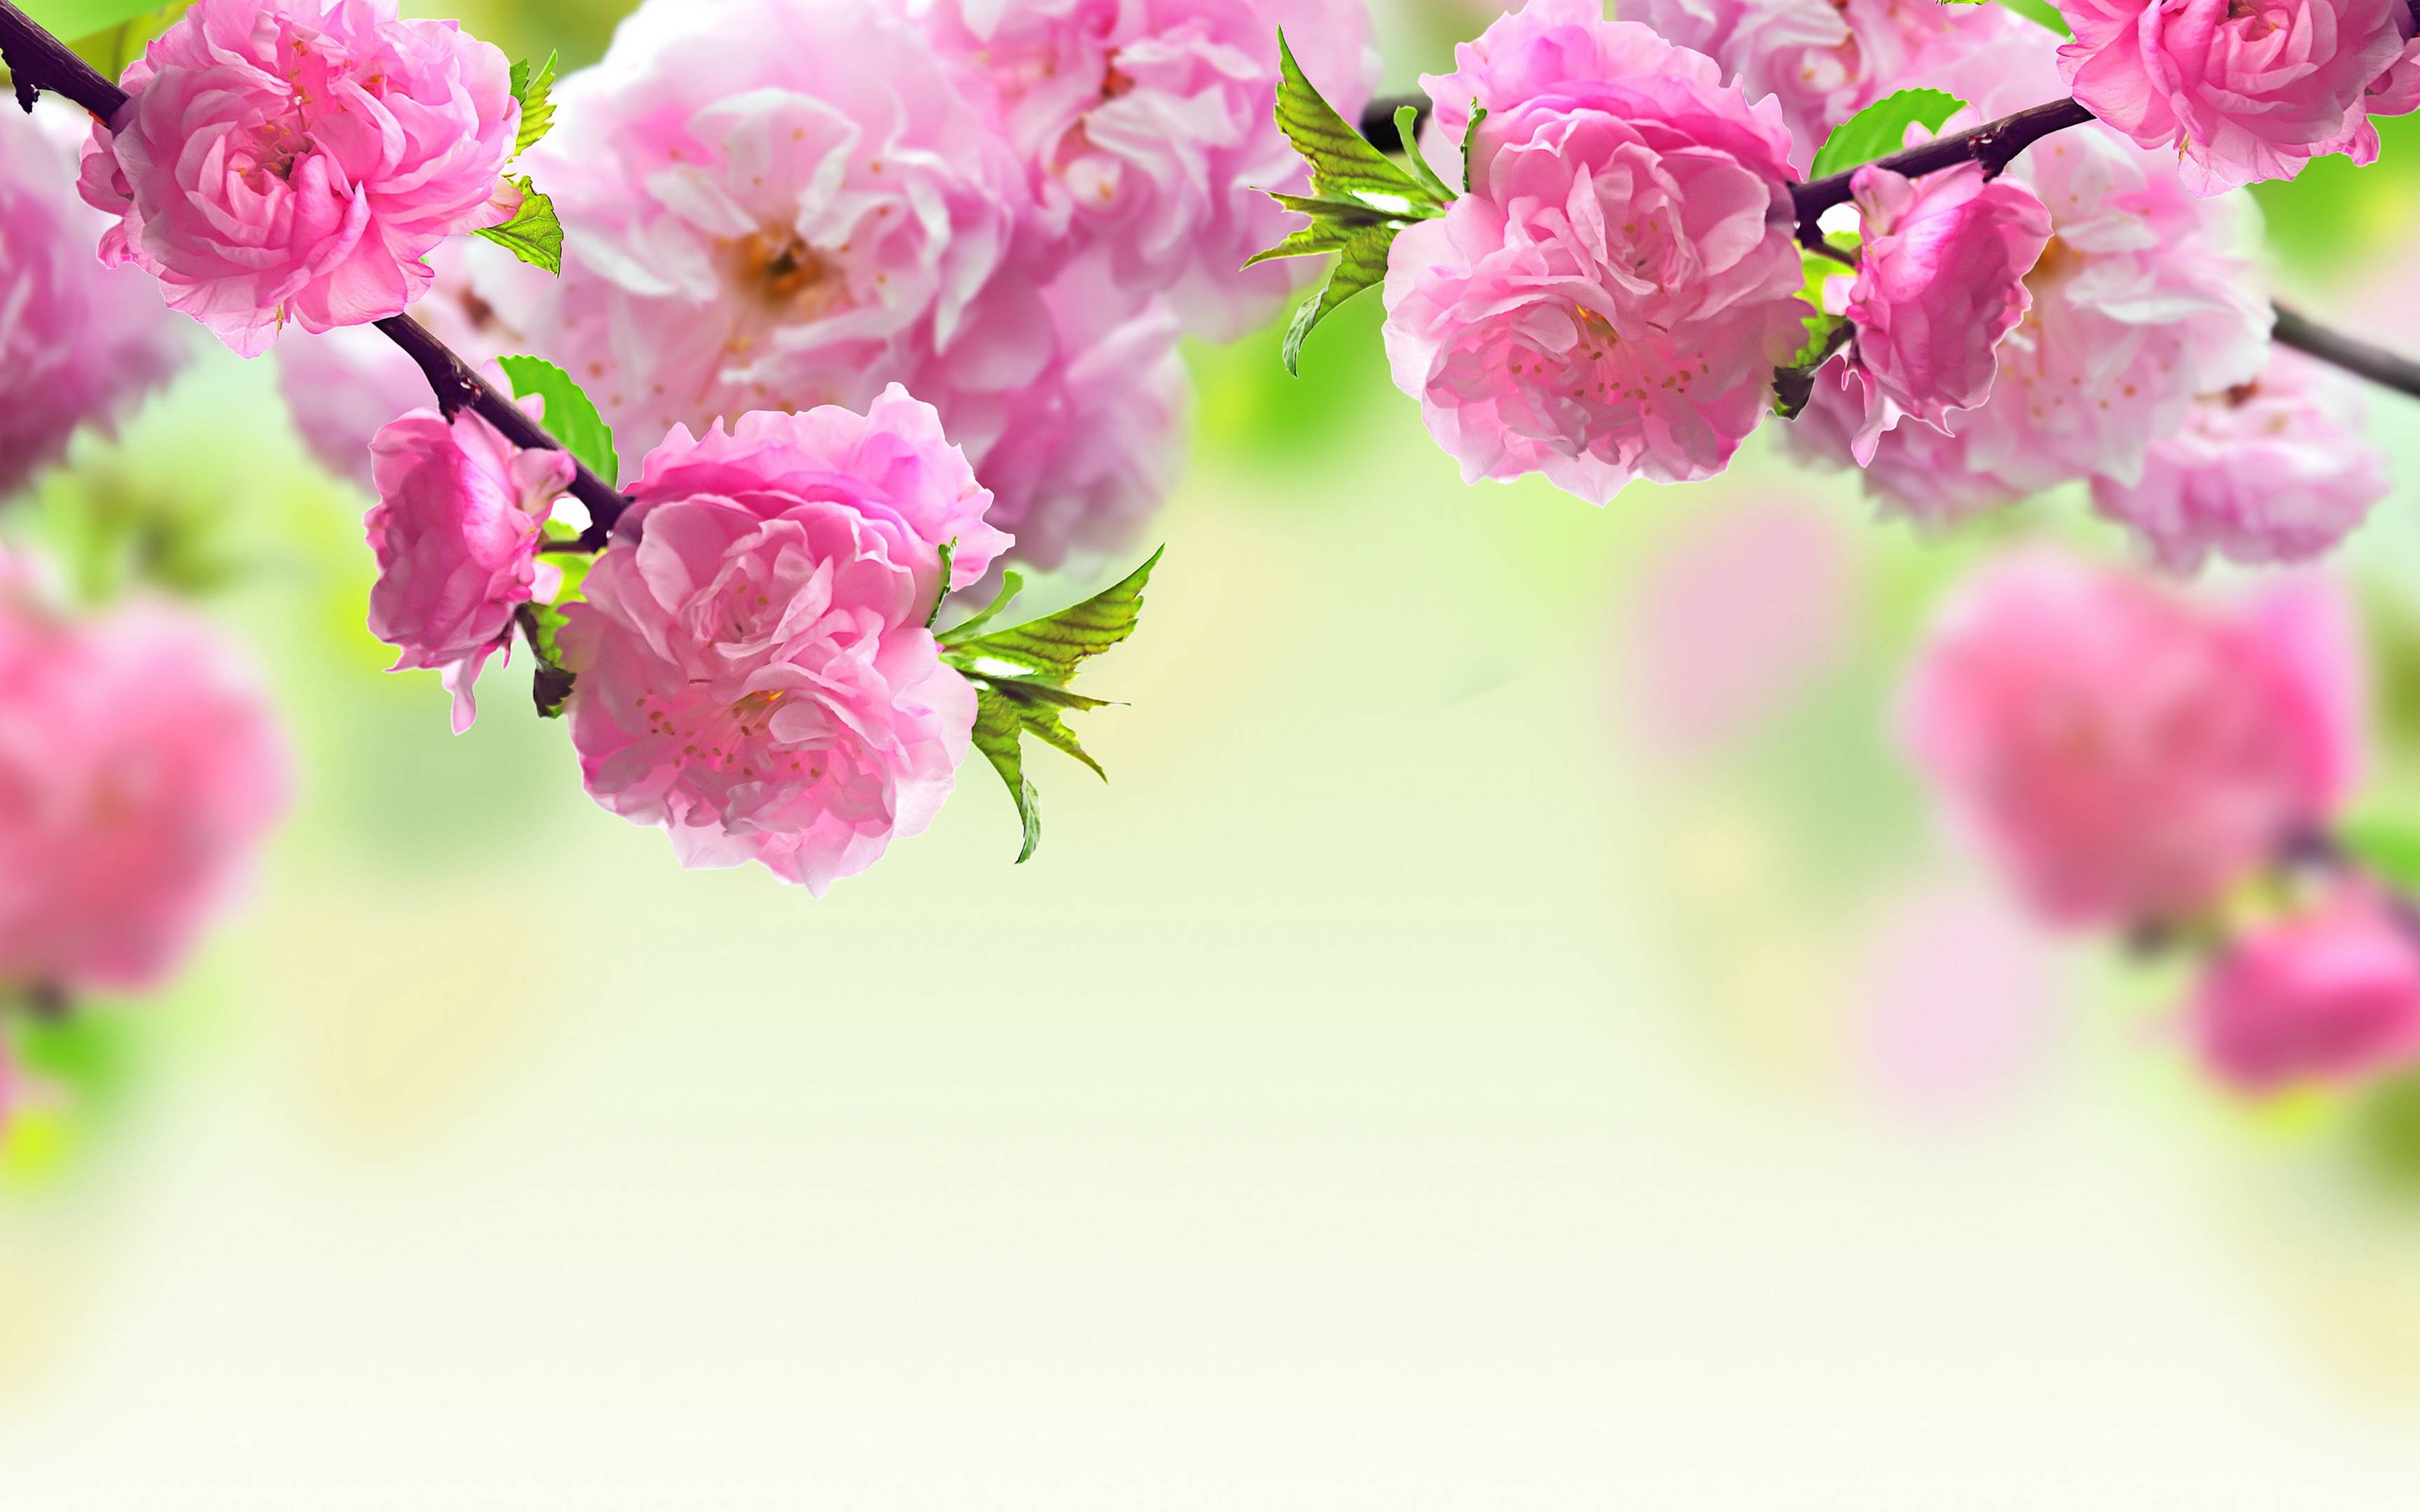 wallpapers pink flowers - photo #21